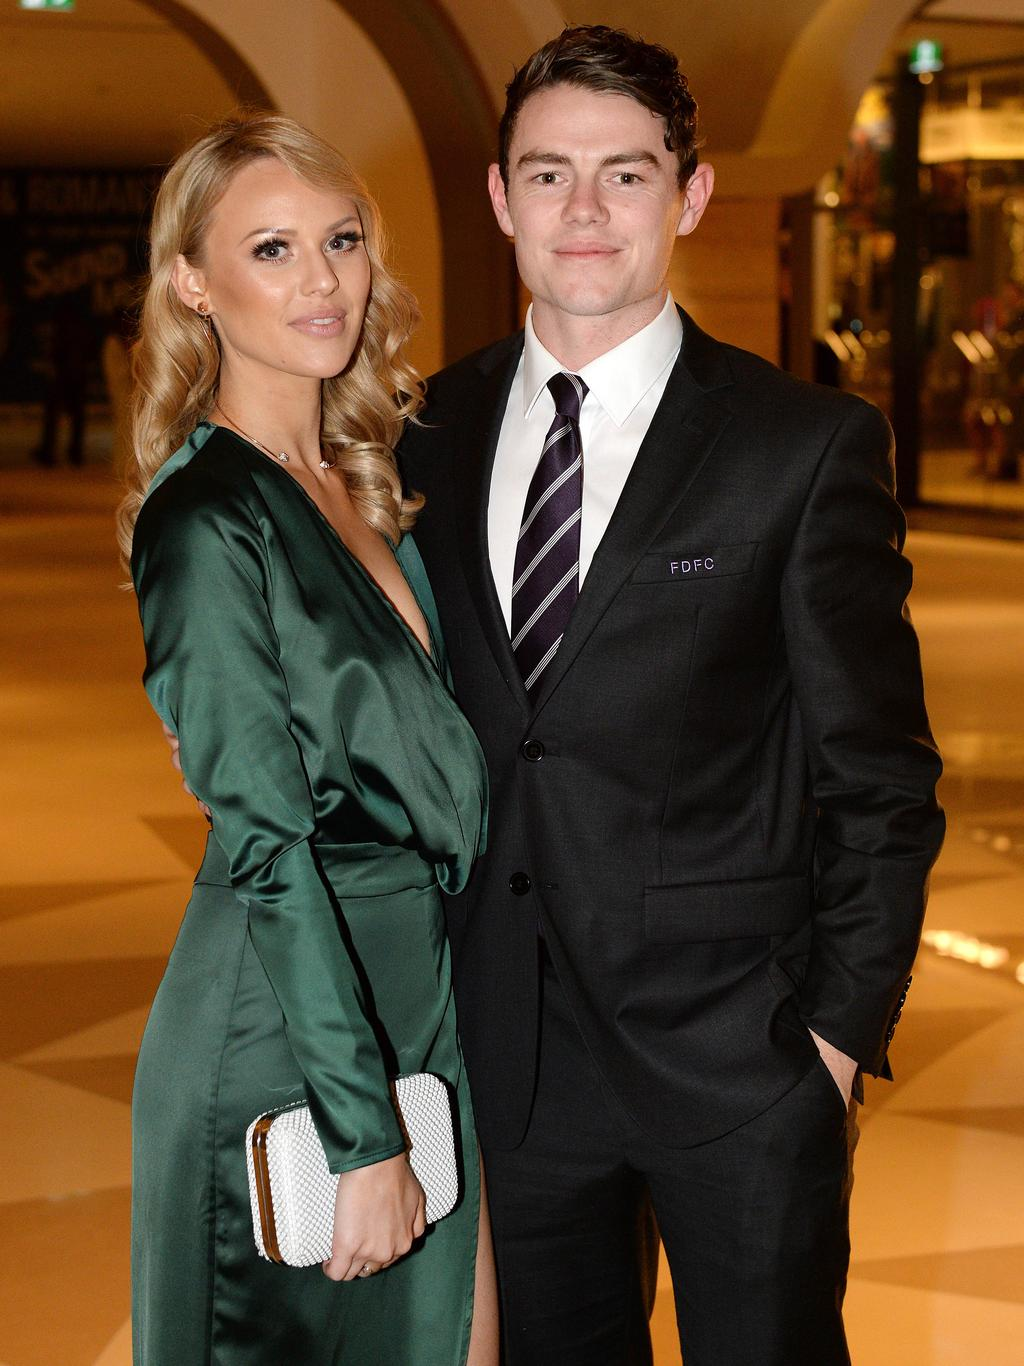 Lachie Neale and Julie Clark at the Fremantle Football Club's 2016 Doig Medal Presentation Dinner at the Grand Ballroom at Crown Perth. Picture: Daniel Wilkins.